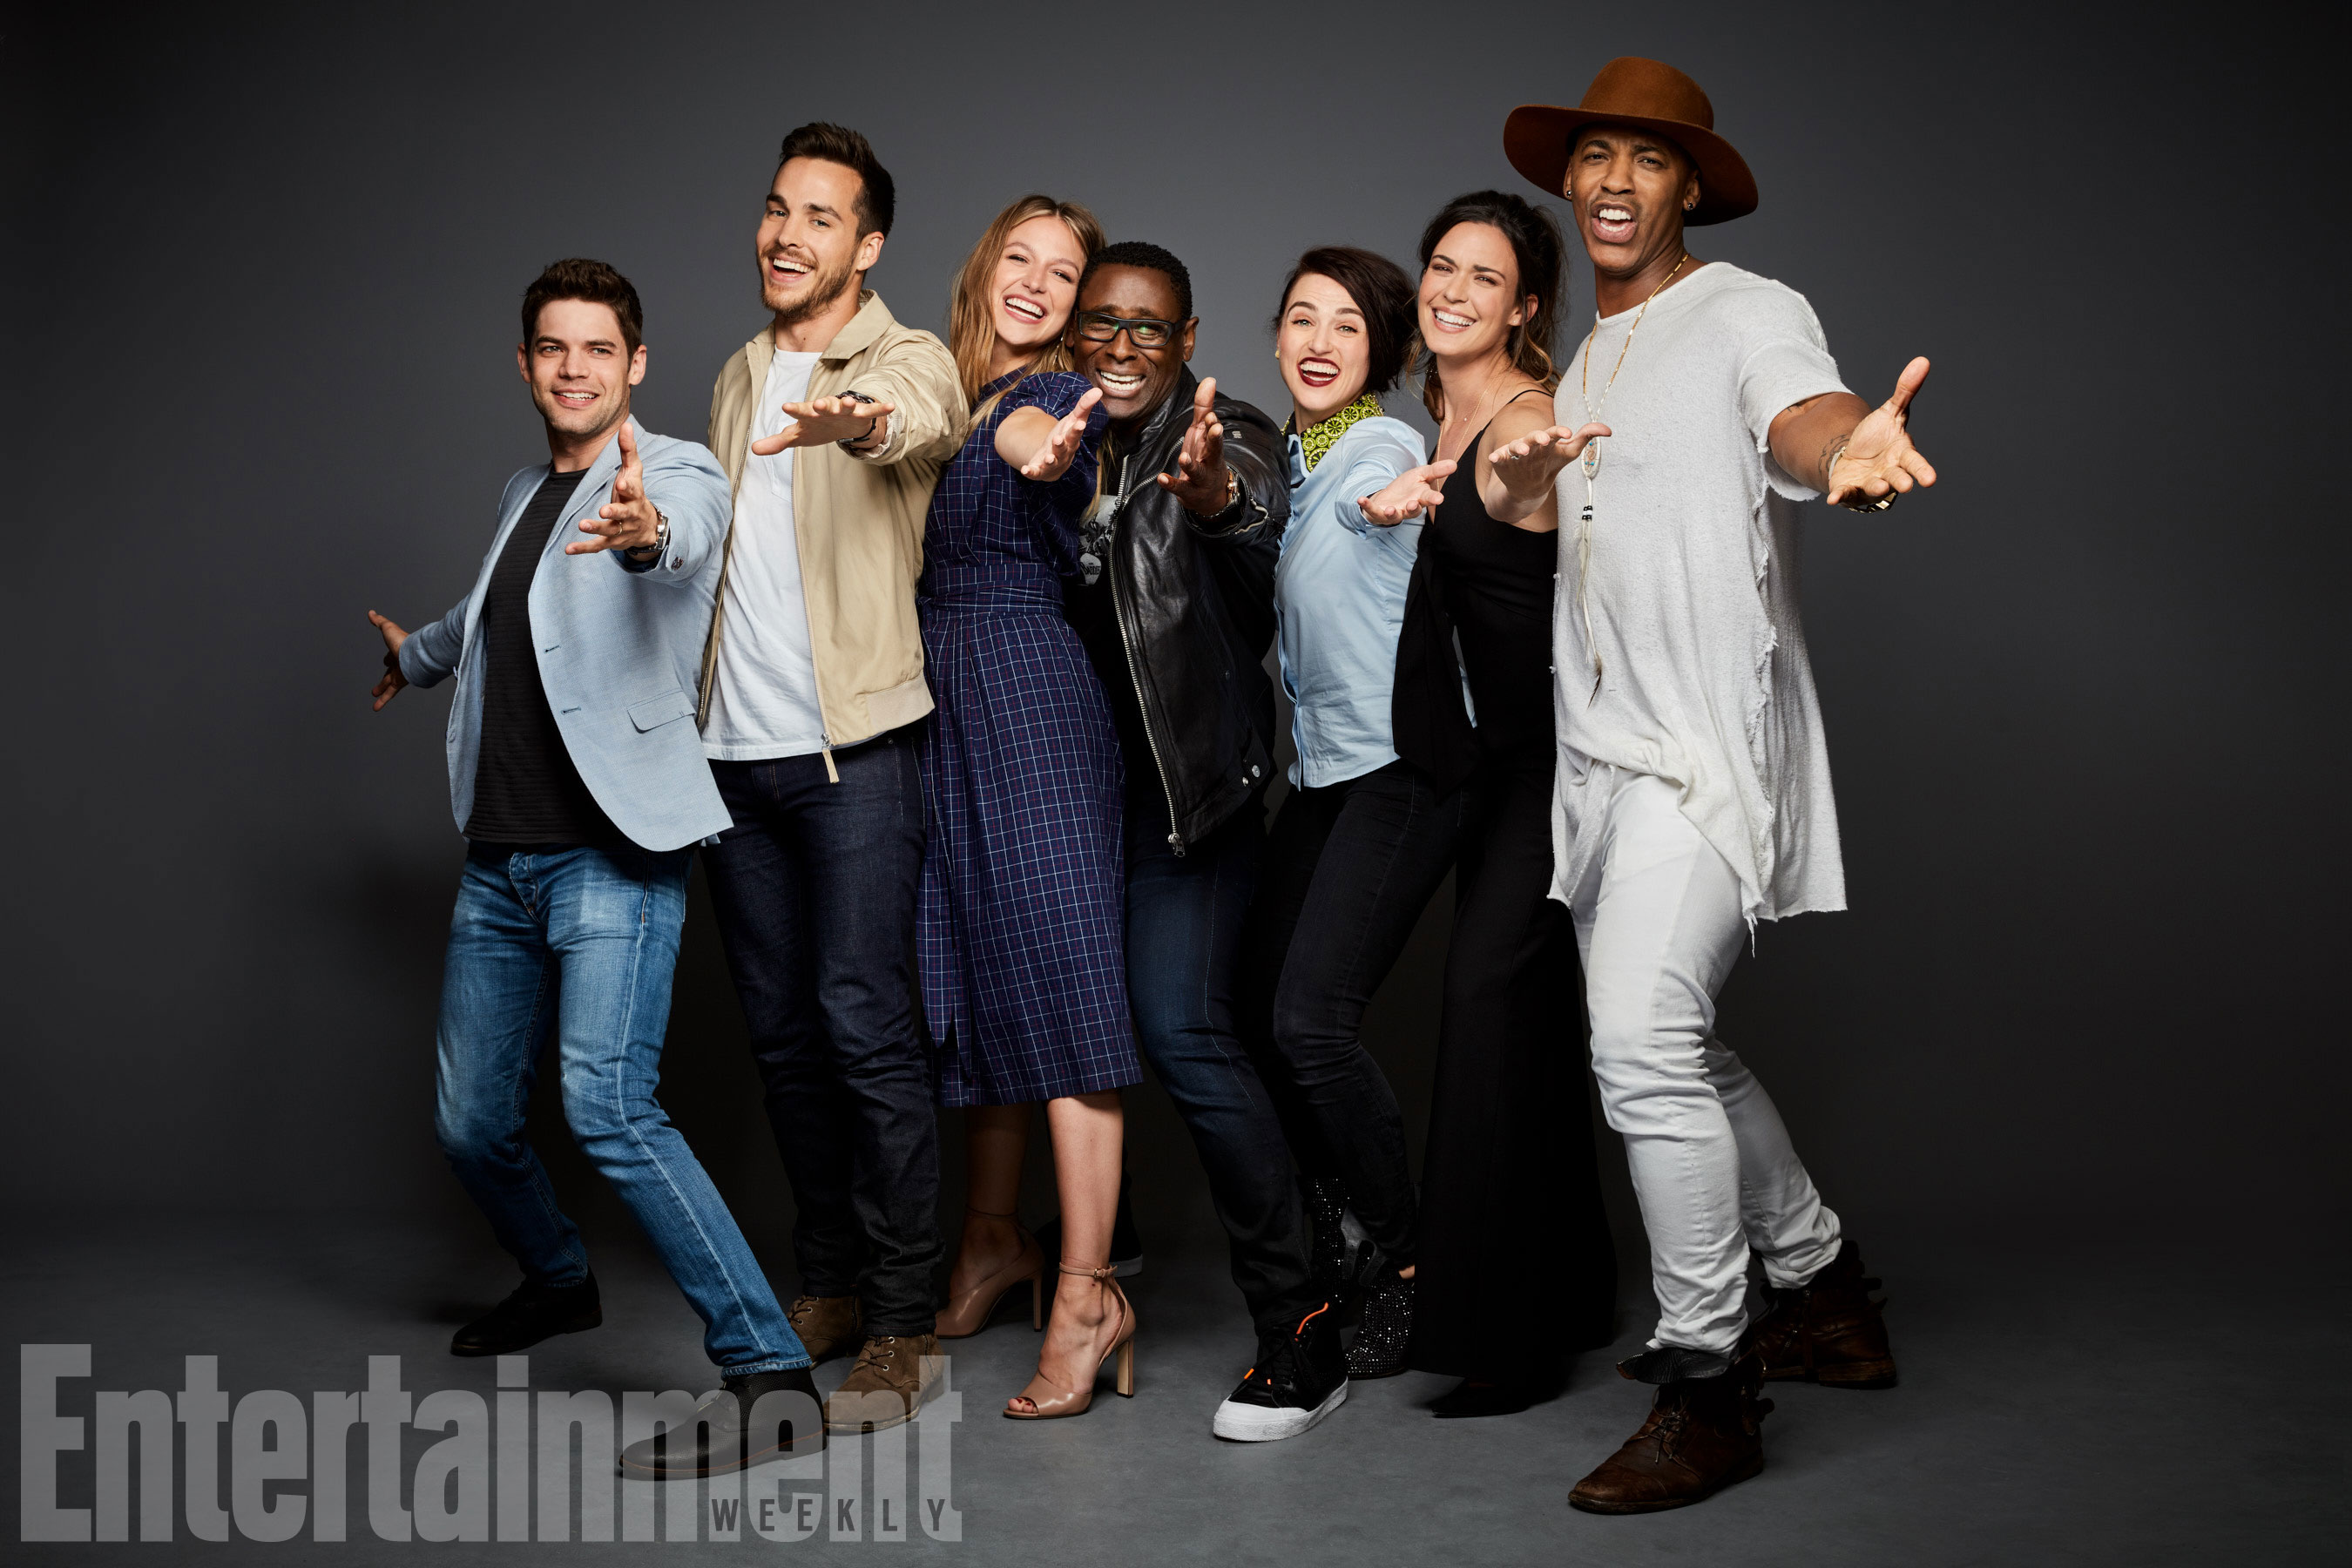 Jeremy Jordan, Chris Wood, Melissa Benoist, David Harewood, Katie McGrath, Odette Annable és Mehcad Brooks (Supergirl)